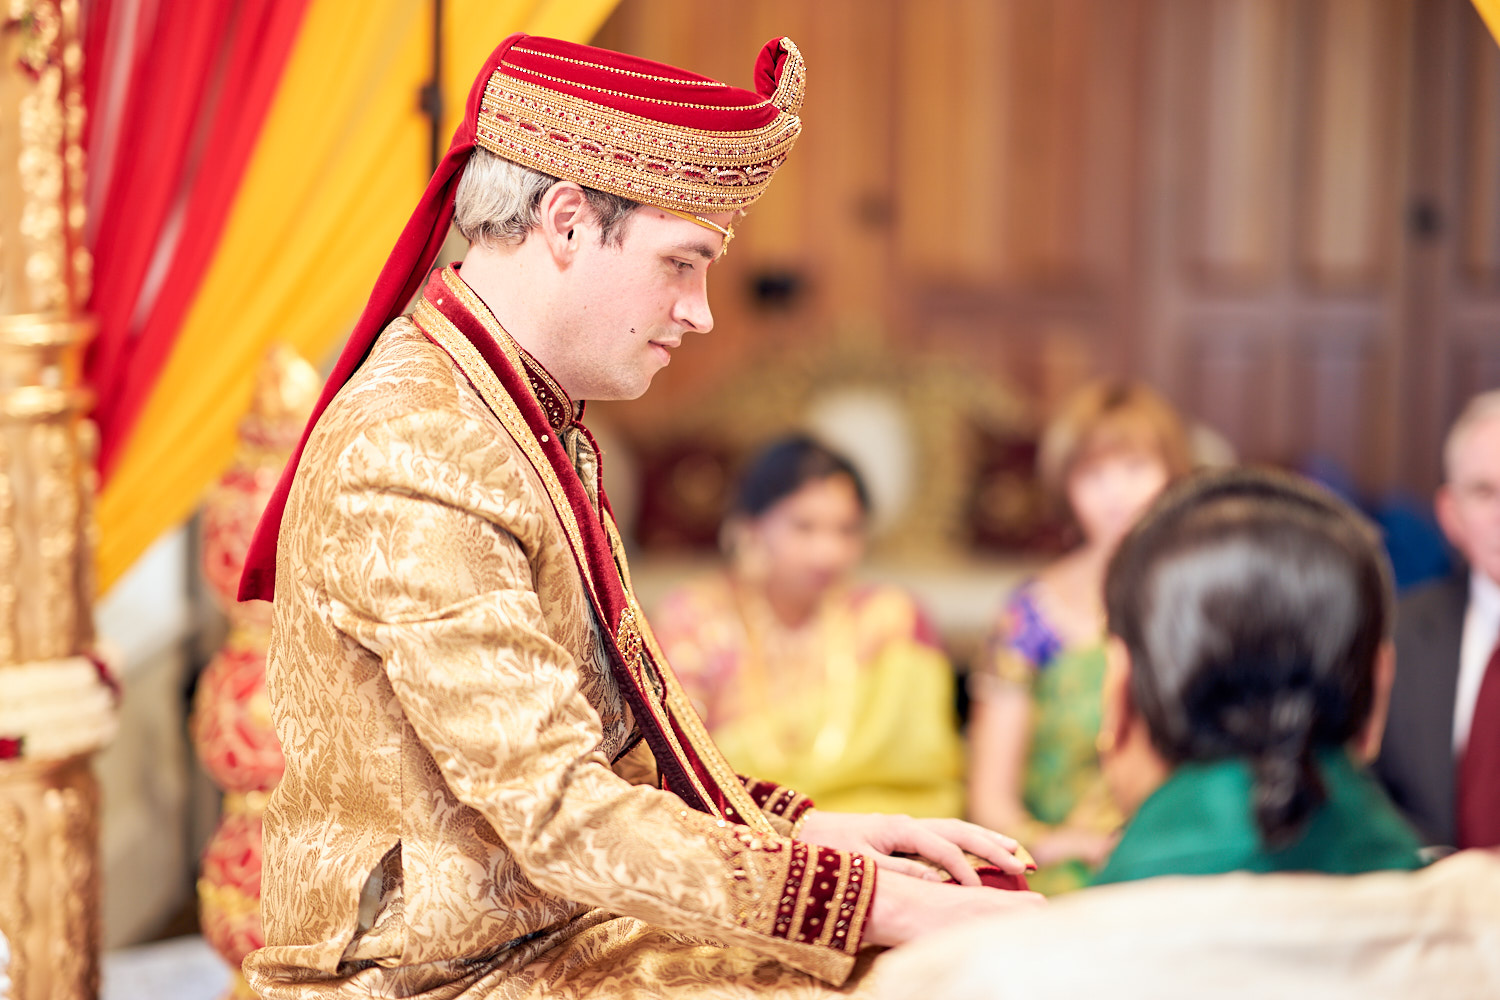 south-indian-wedding-ceremony-photography-by-afewgoodclicks-net-in-saratoga 65.jpg